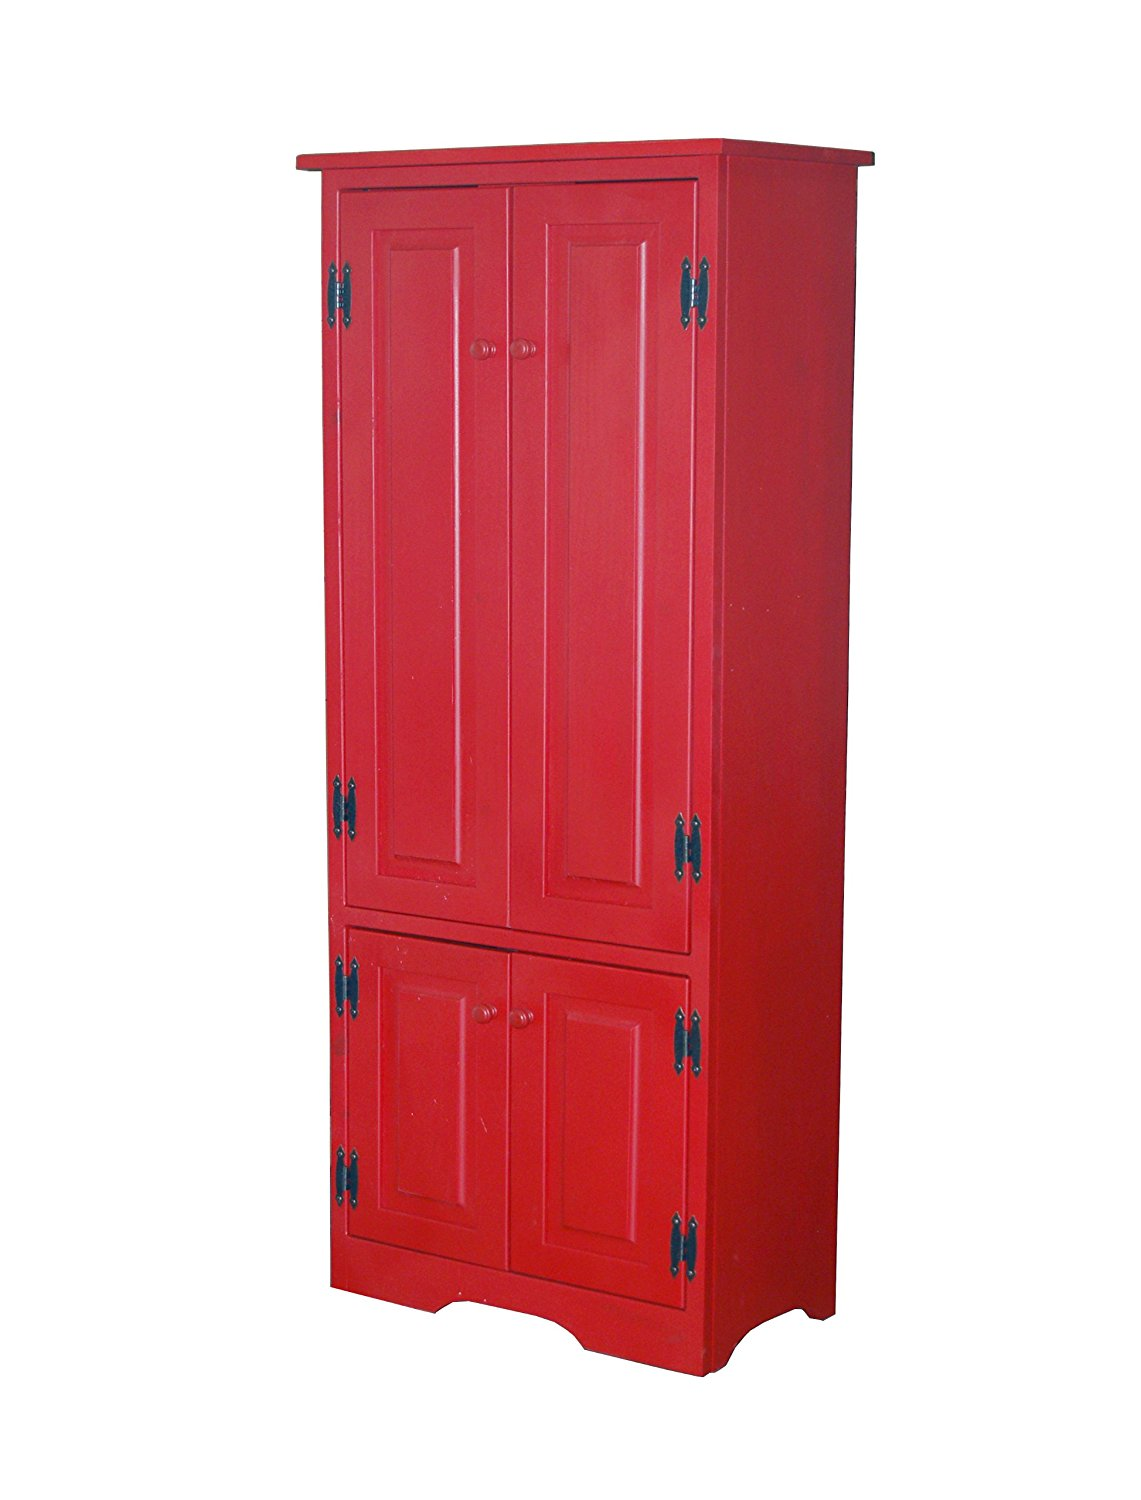 Kitchen Storage Cabinets At Target Red Kitchen Cabinets Making A Bold Statement Cool Ideas